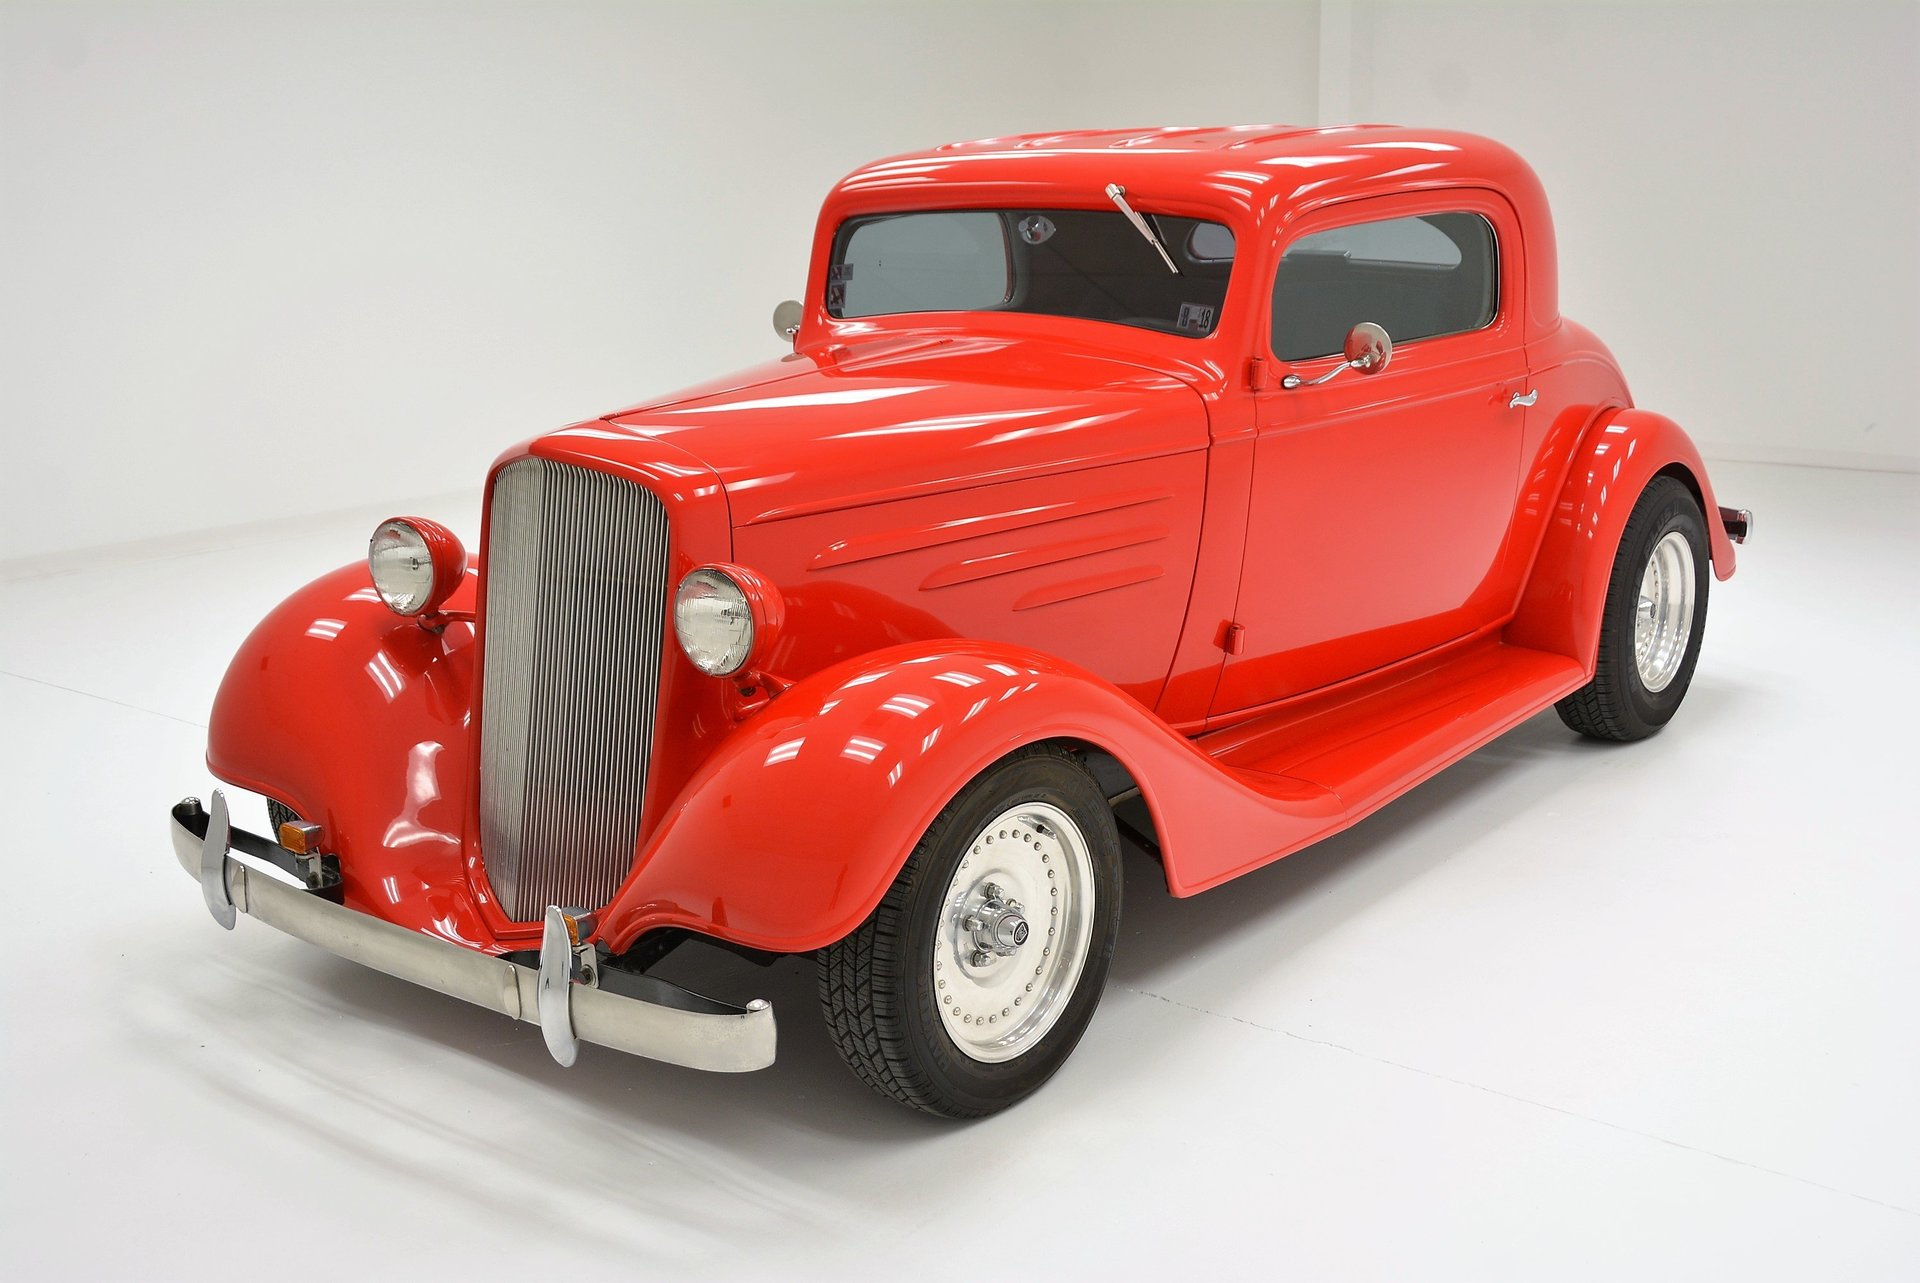 1935 Chevrolet 3-Window Coupe